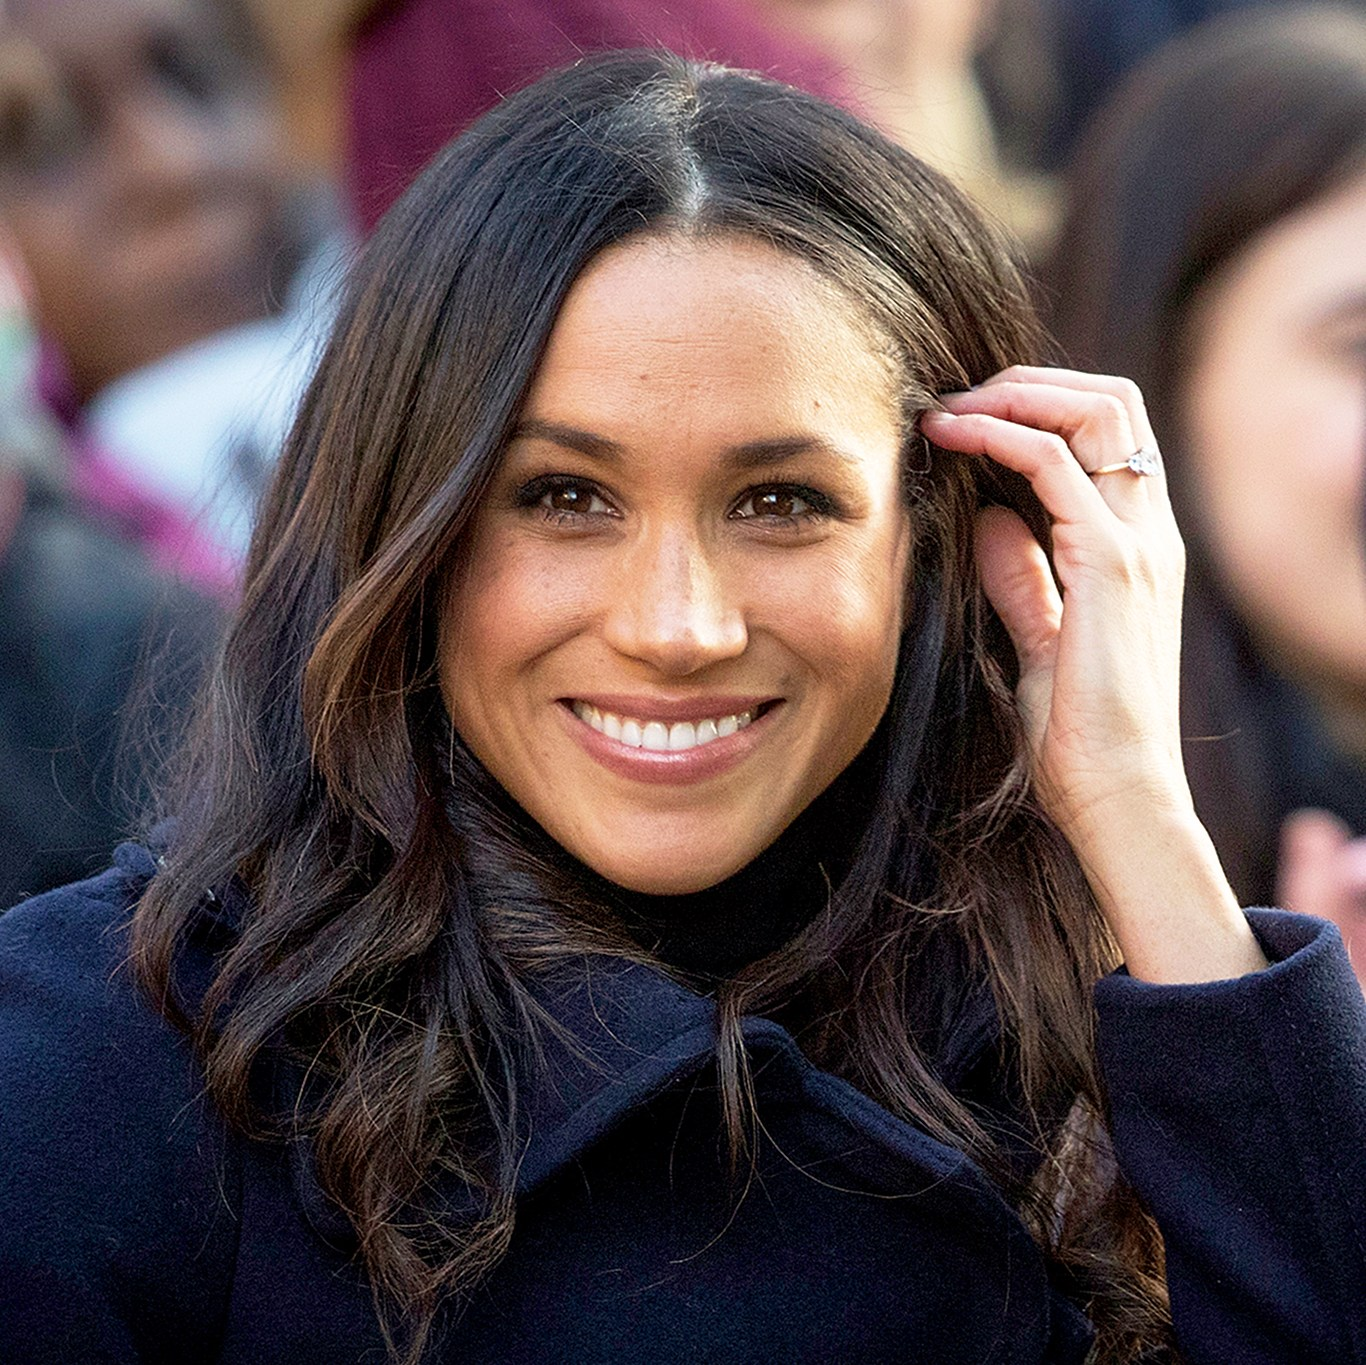 Meghan Markle arrives at the Terrance Higgins Trust World AIDS Day charity fair on December 1, 2017 in Nottingham, England.